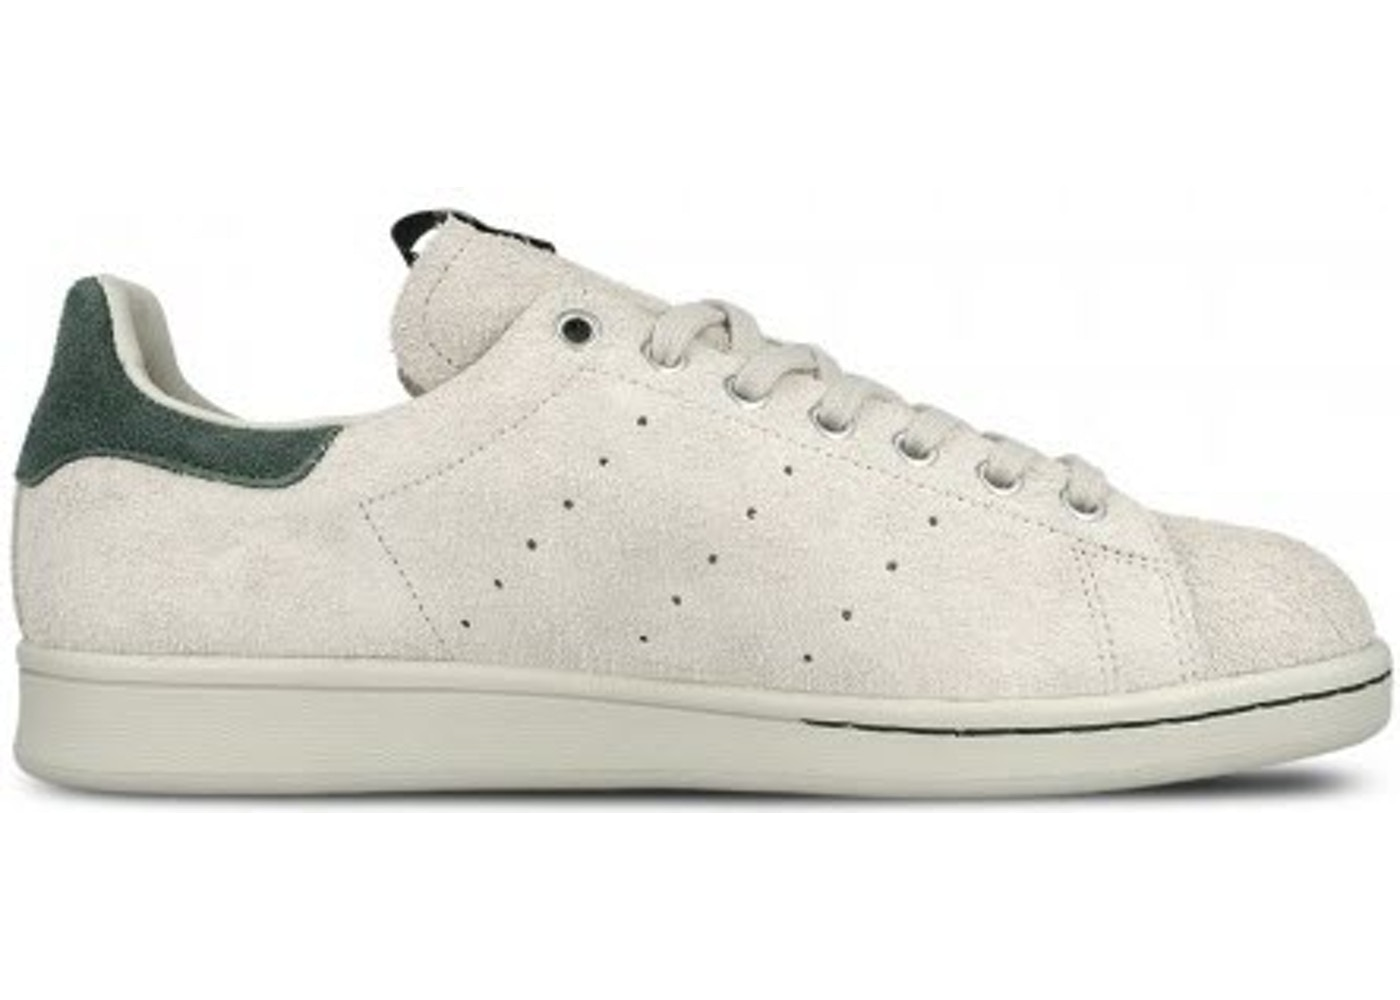 ce91d3e06cd66 adidas Stan Smith Juice Rough Suede - BA8631